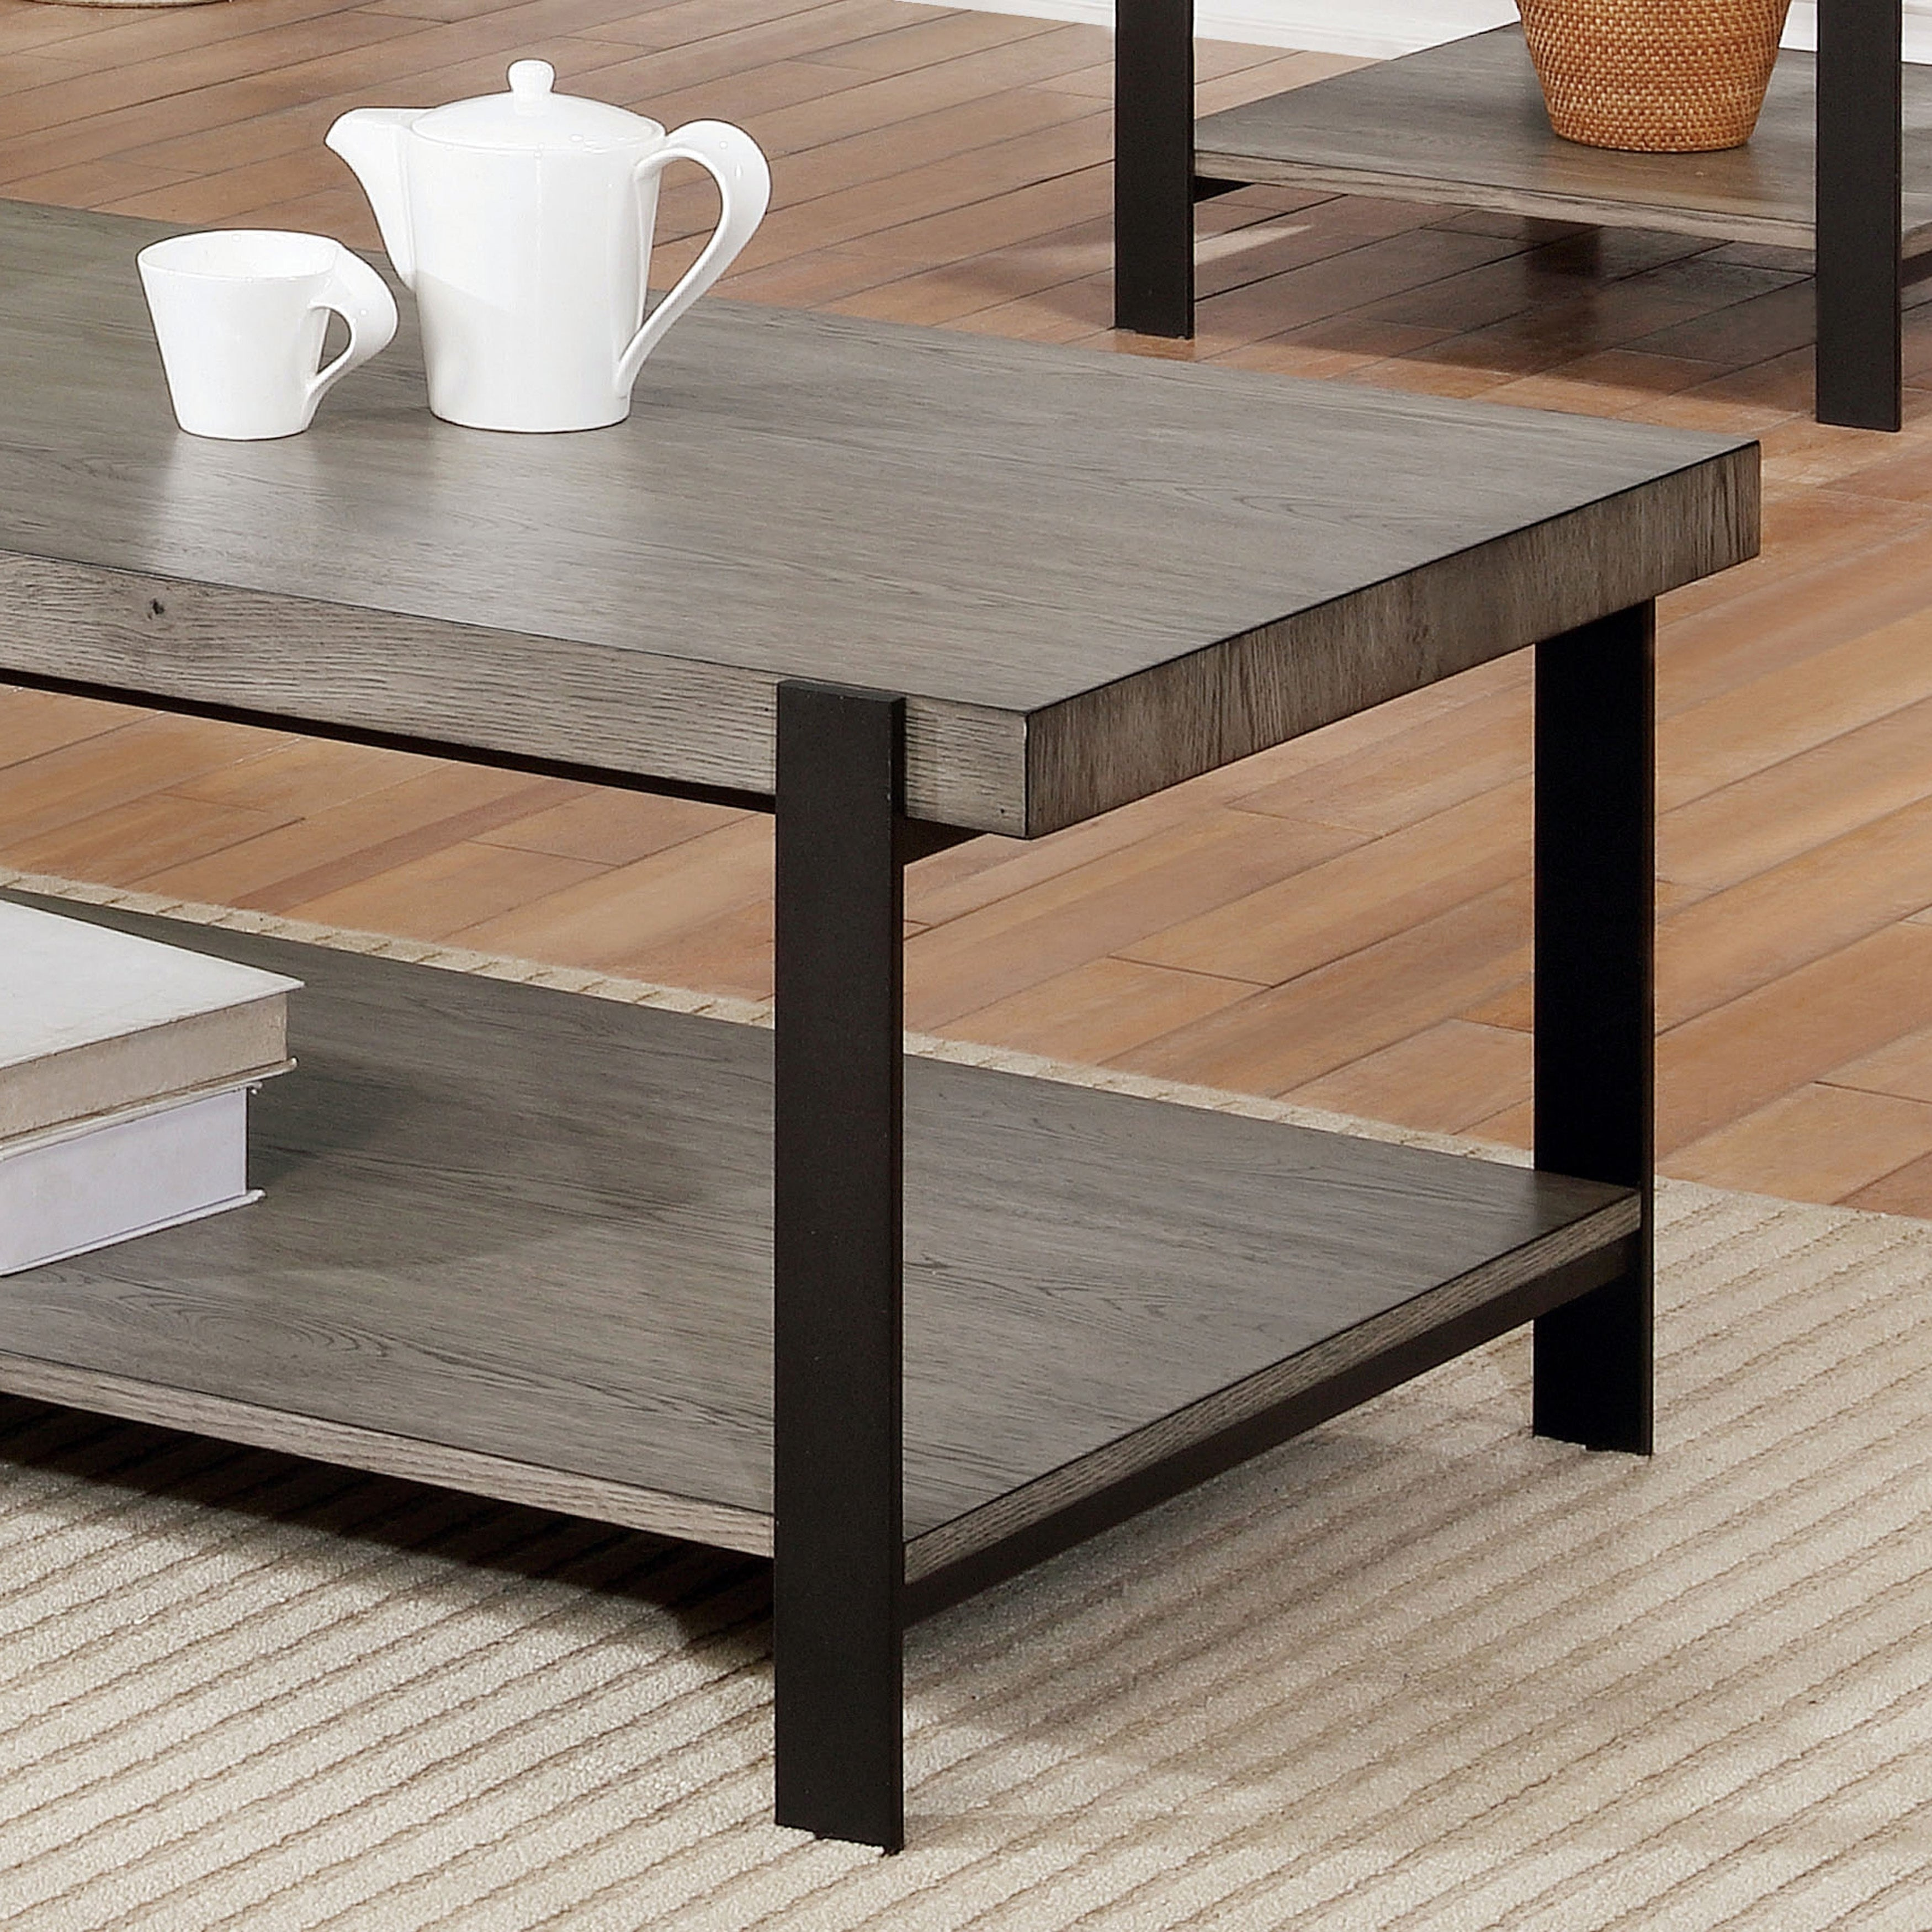 a7d0b9c655f Shop Furniture of America Blake Contemporary Grey Wash Coffee Table - On  Sale - Free Shipping Today - Overstock - 23136339